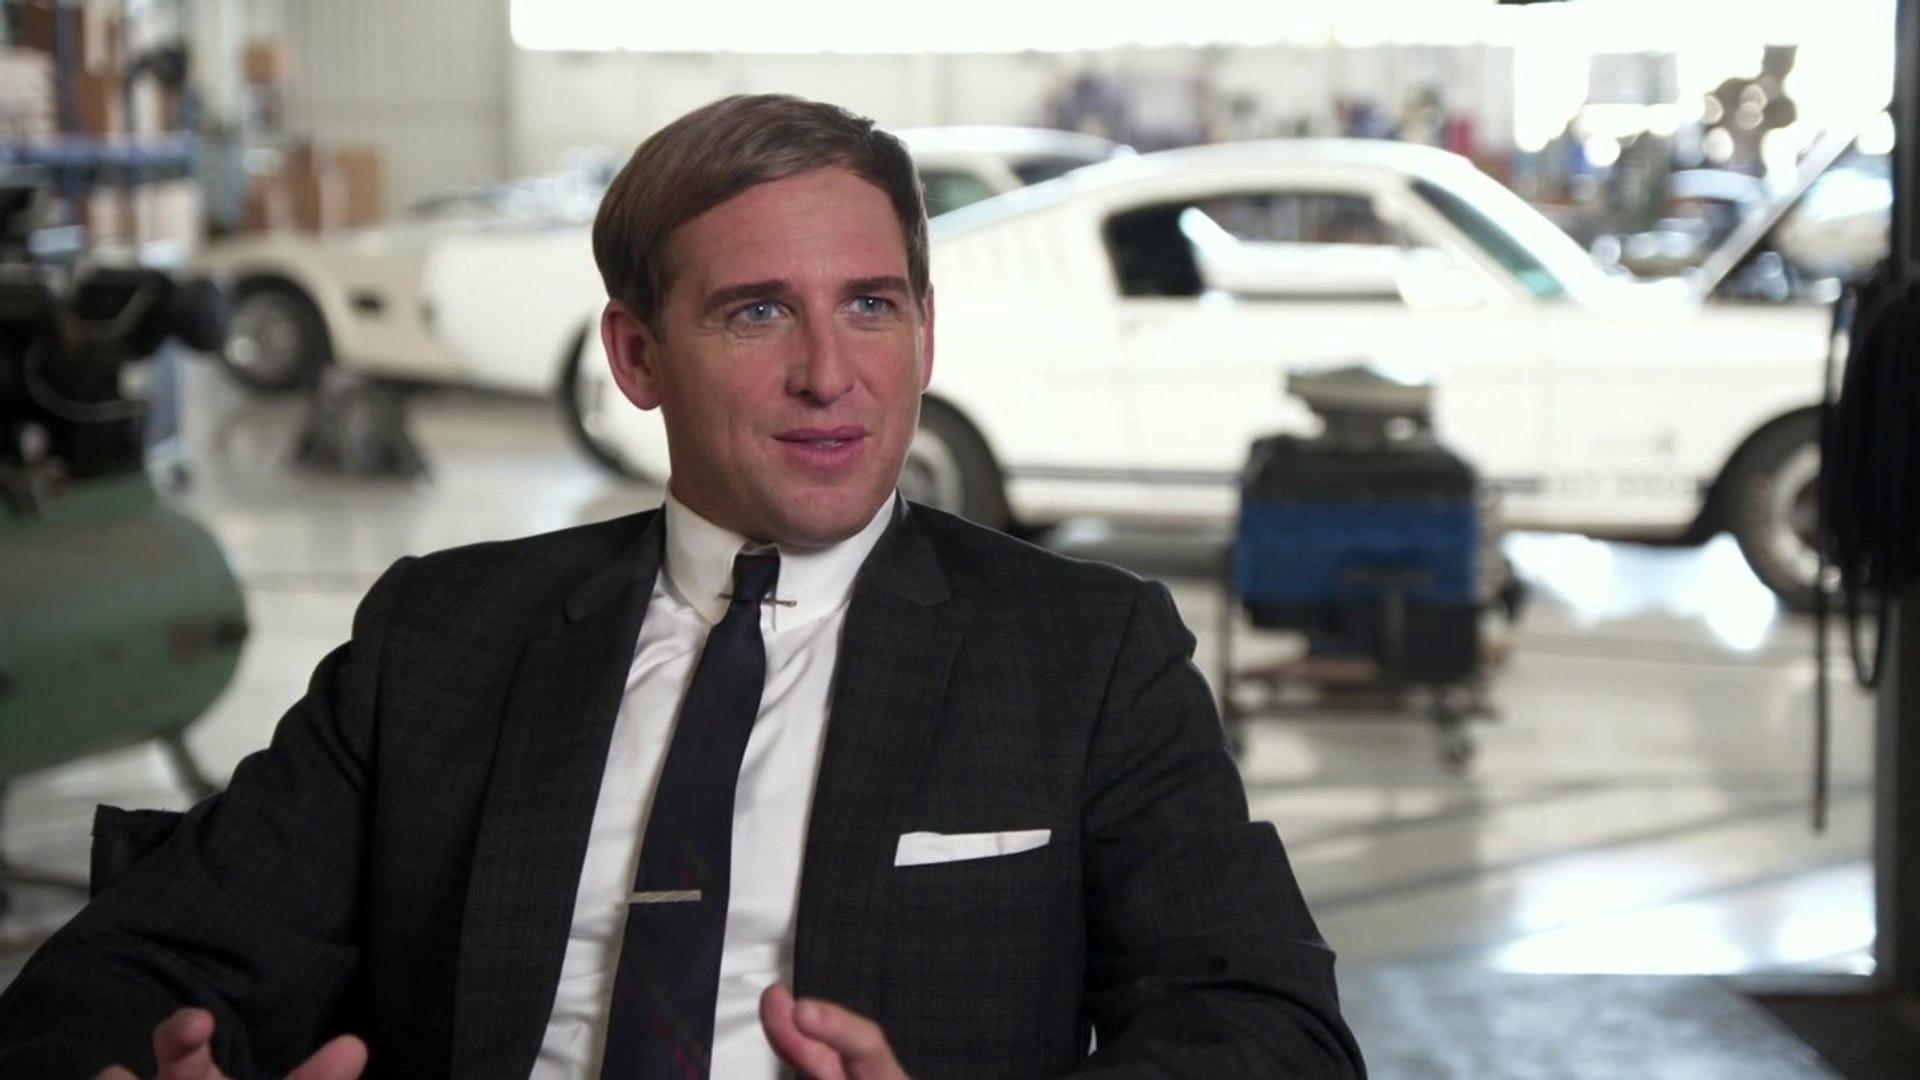 Ford V Ferrari Josh Lucas On What Attracted Him To The Film